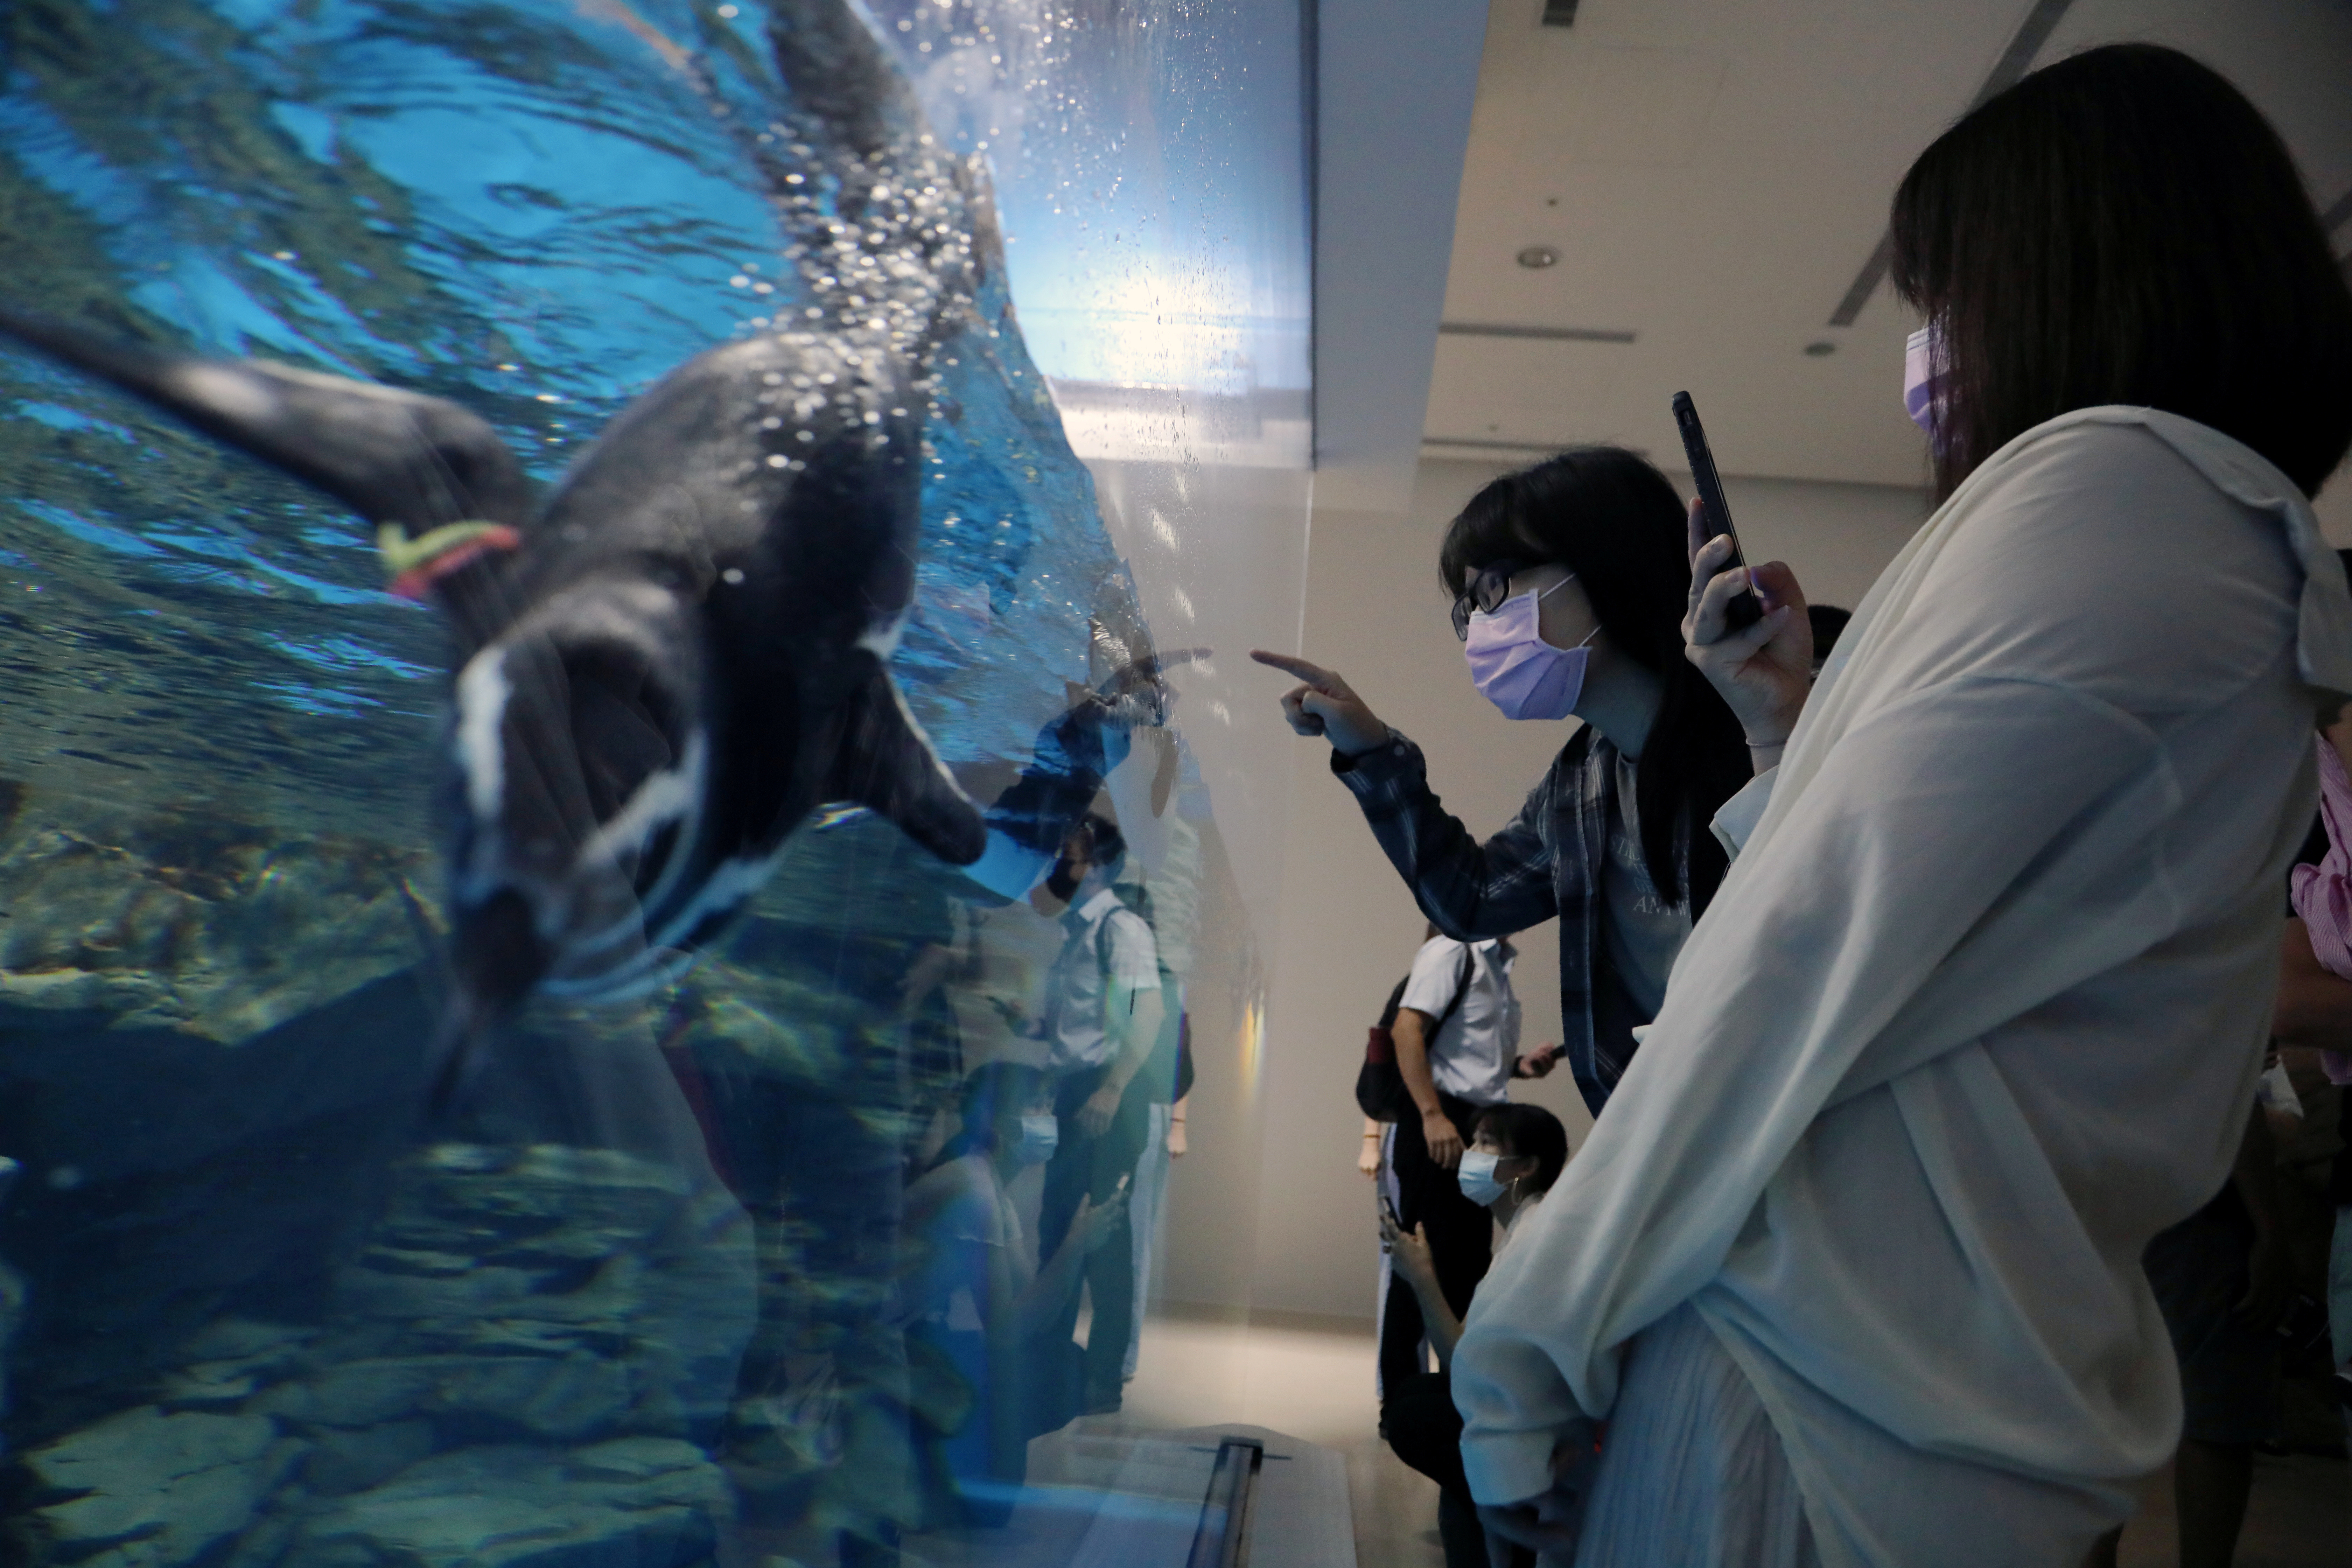 Visitors tour the Xpark Aquarium on its opening day while wearing protective masks to prevent the spread of the coronavirus disease (COVID-19) in Taoyuan, Taiwan, August 7, 2020. REUTERS/Ann Wang - RC2X8I93N8ZB